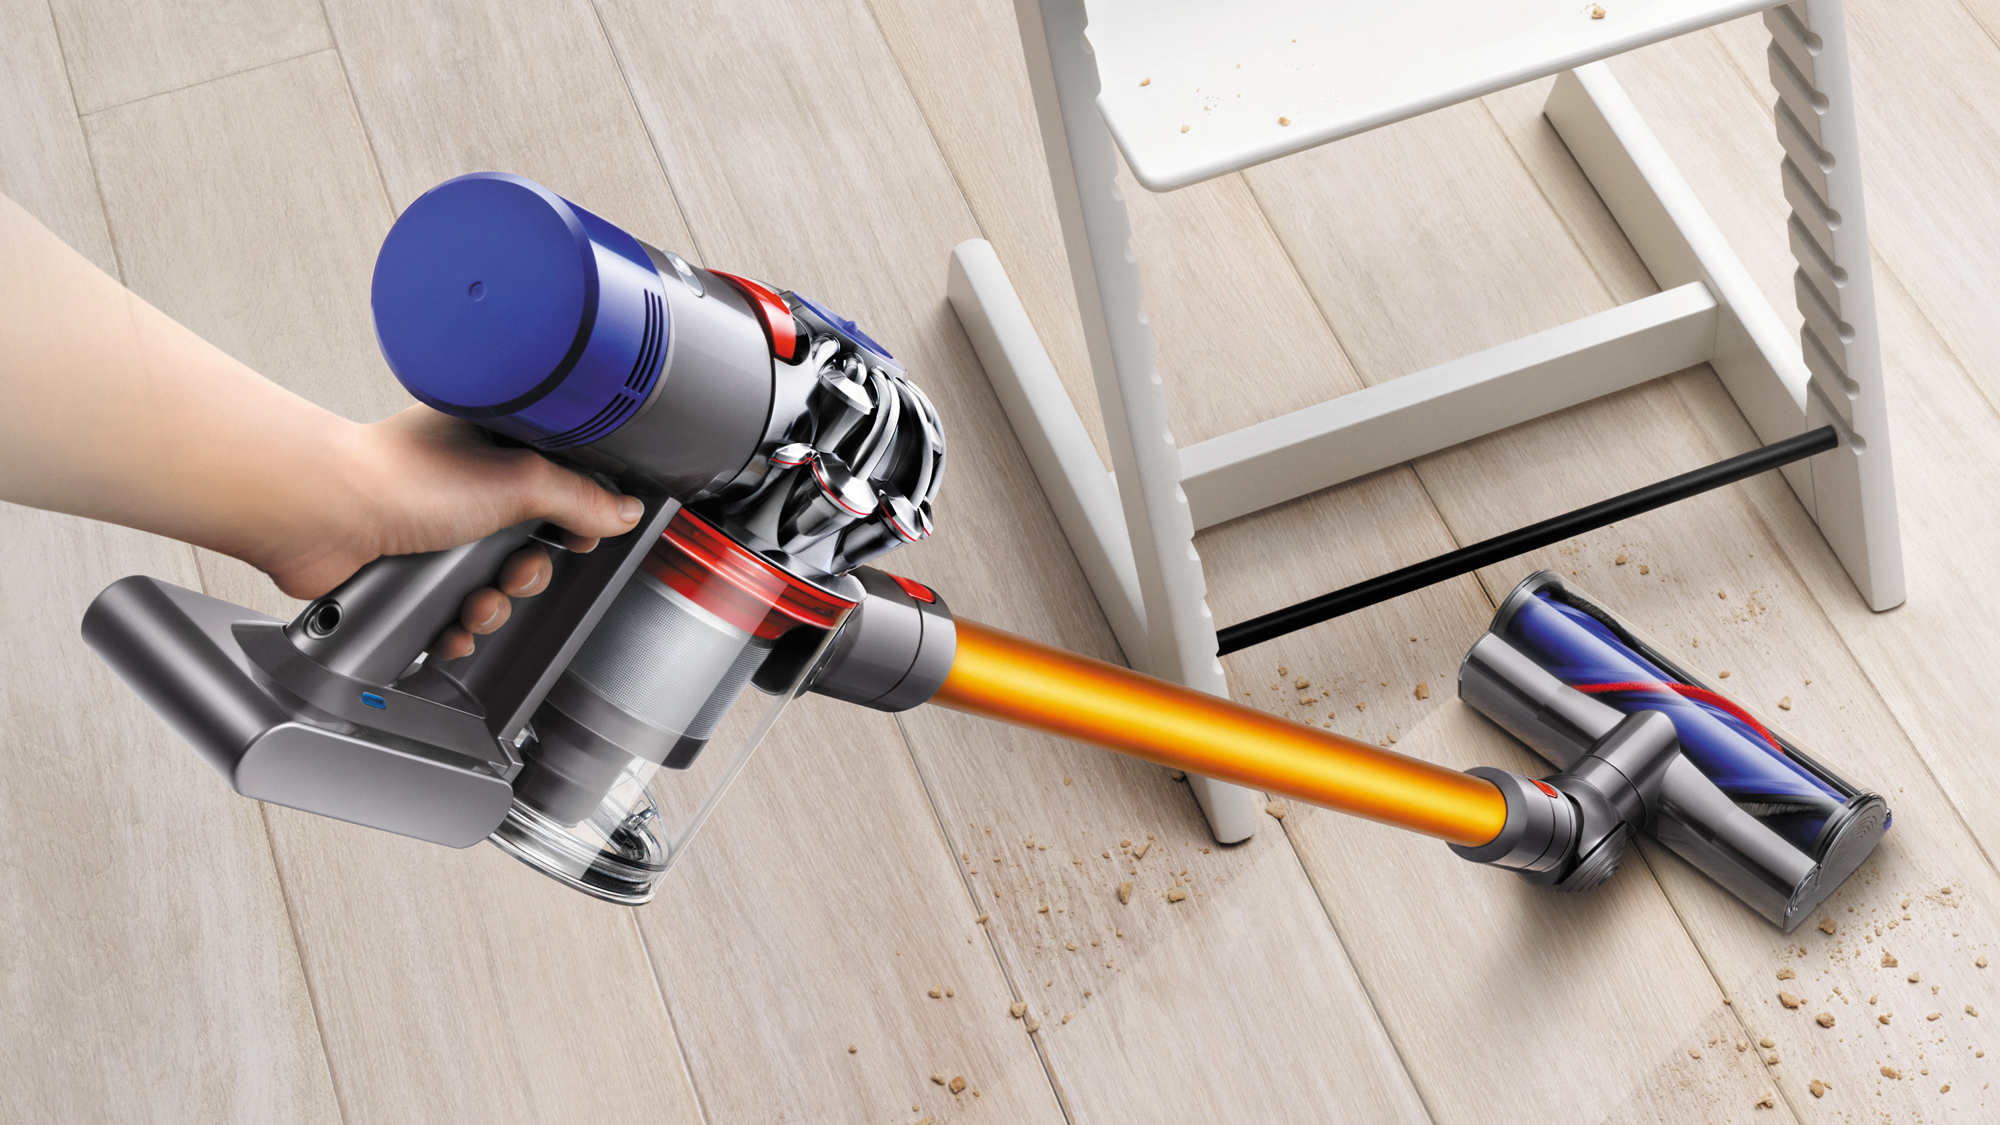 The Dyson V8 Absolute is big on performance, looks and price